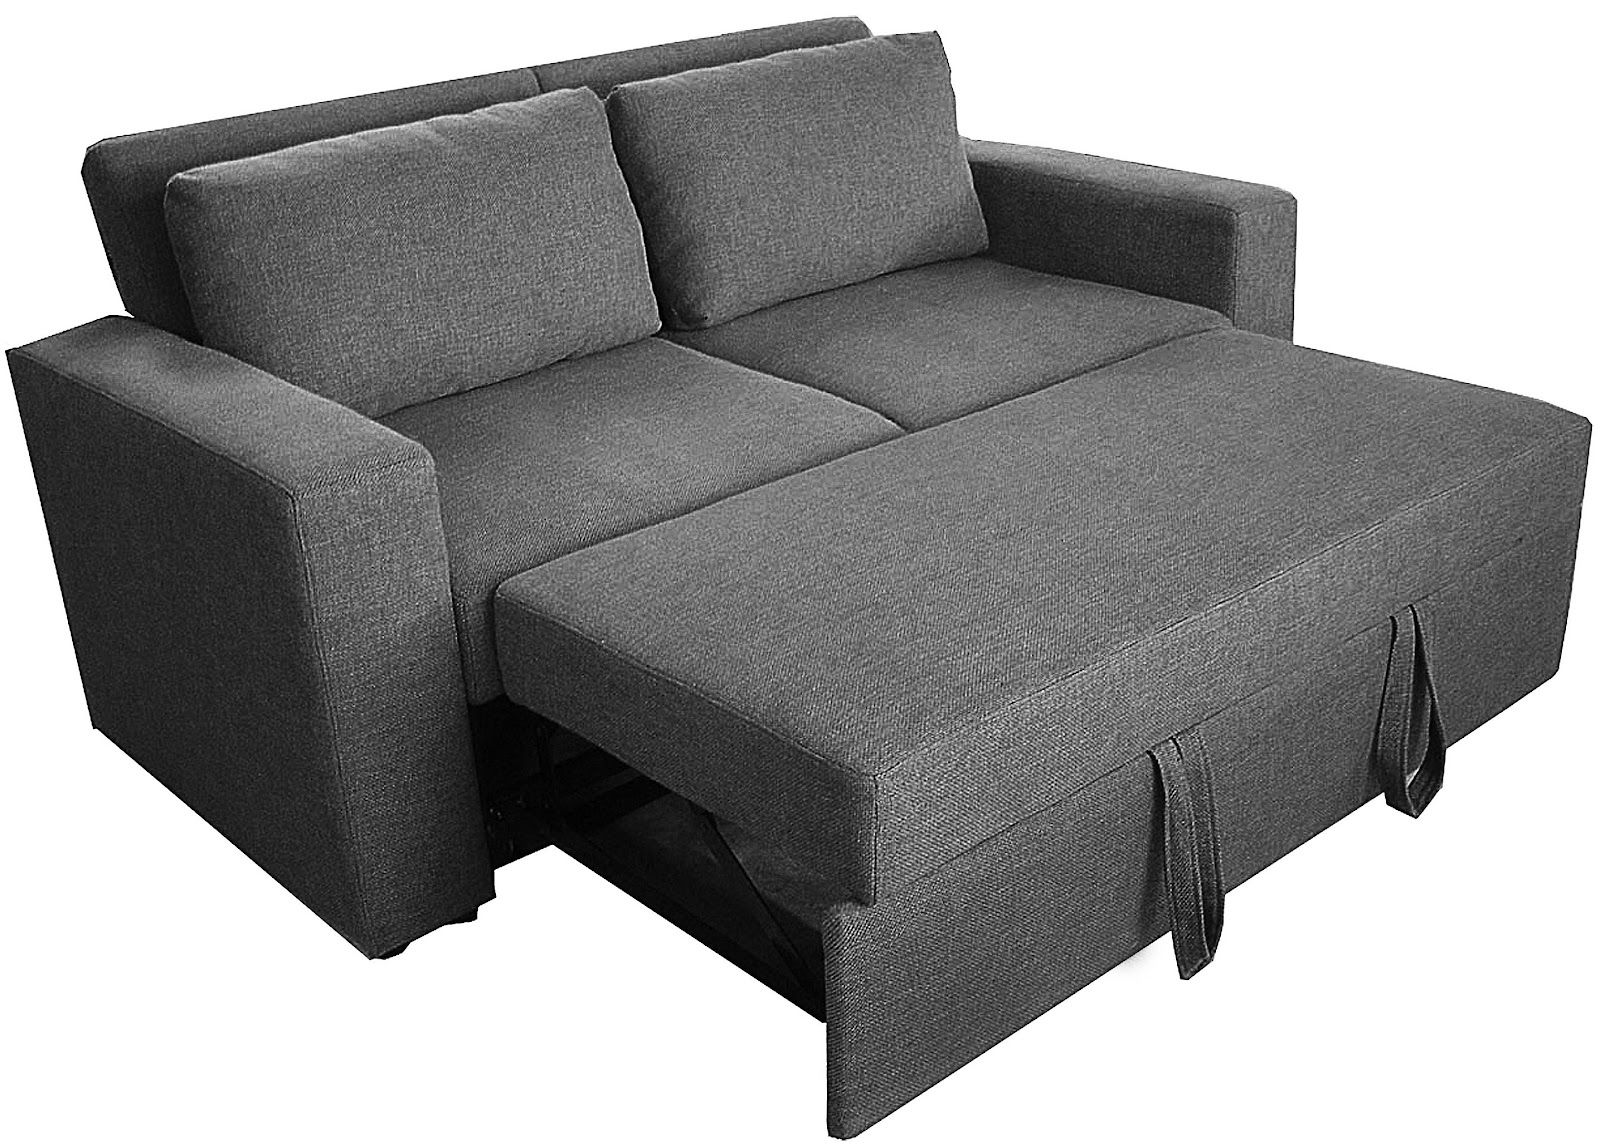 Pull Out Sleeper Sofa In 2020 Pull Out Sofa Bed Ikea Sofa Bed Solsta Sofa Bed